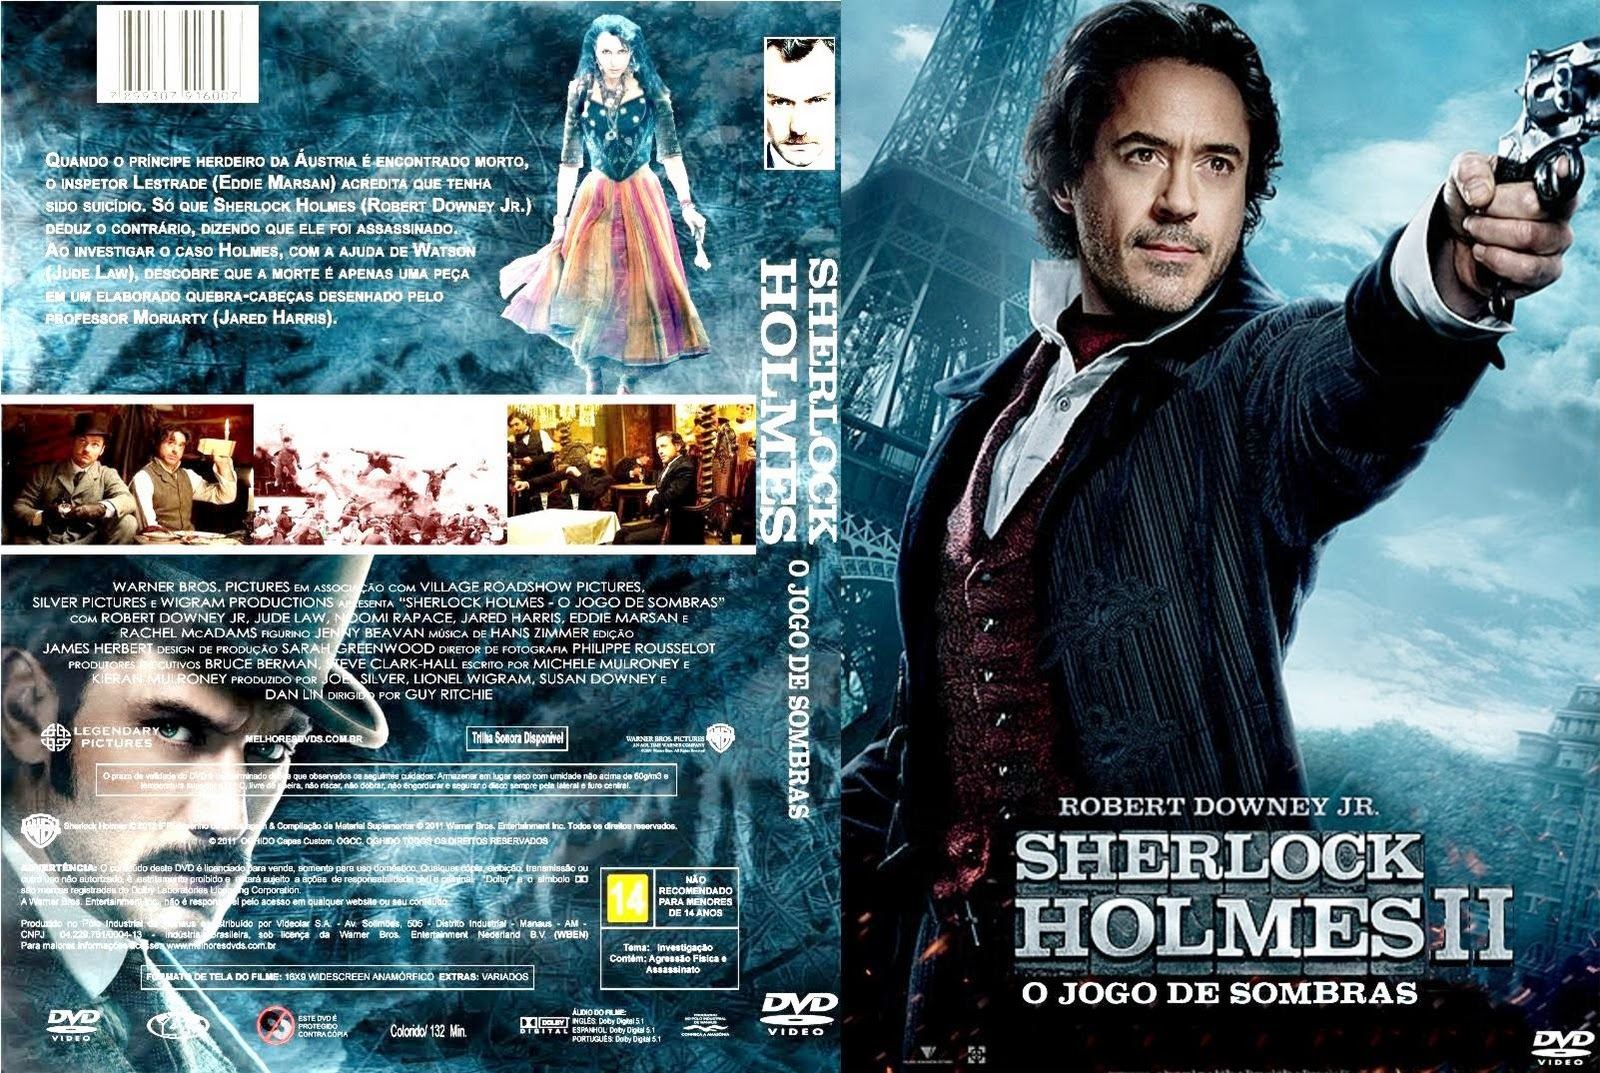 VOSTFR TÉLÉCHARGER SHERLOCK BRIDE THE ABOMINABLE